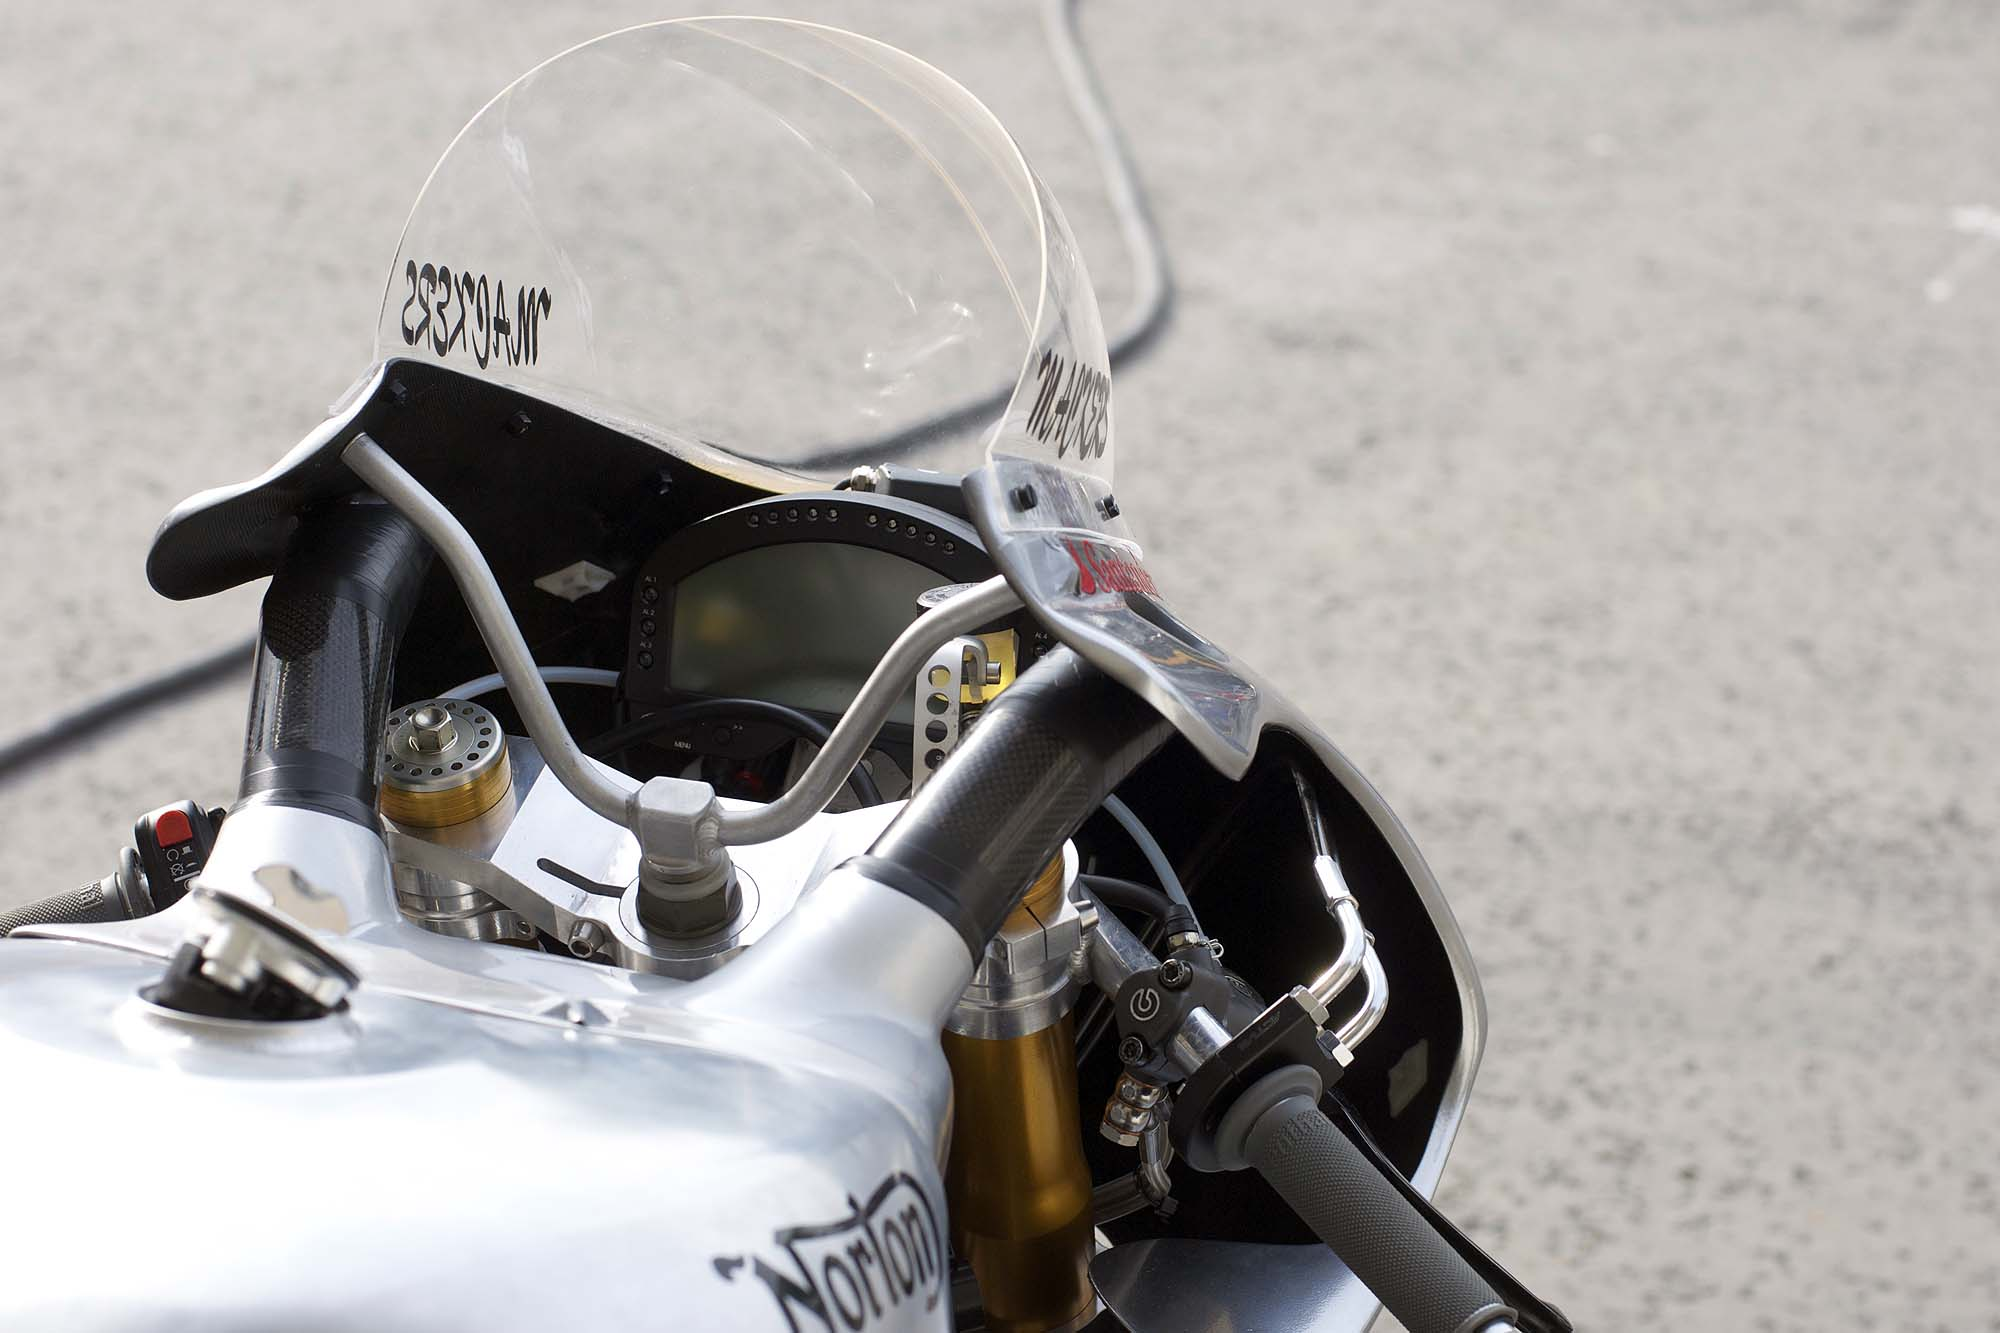 https://www.asphaltandrubber.com/wp-content/gallery/up-close-with-the-norton-sg1/norton-sg1-isle-of-man-tt-21.jpg